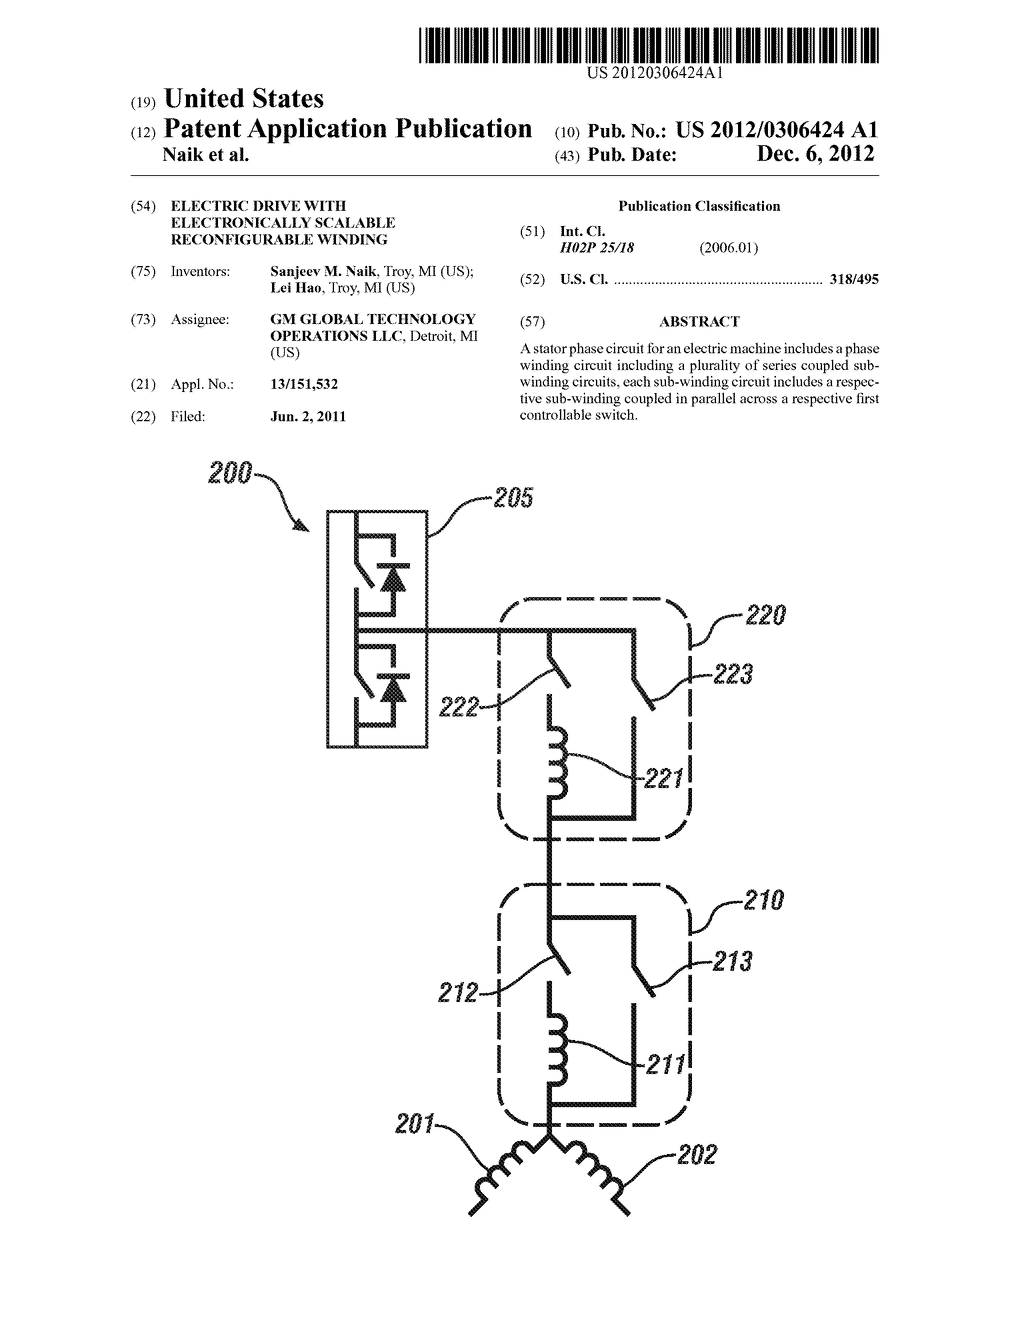 ELECTRIC DRIVE WITH ELECTRONICALLY SCALABLE RECONFIGURABLE WINDING - diagram, schematic, and image 01